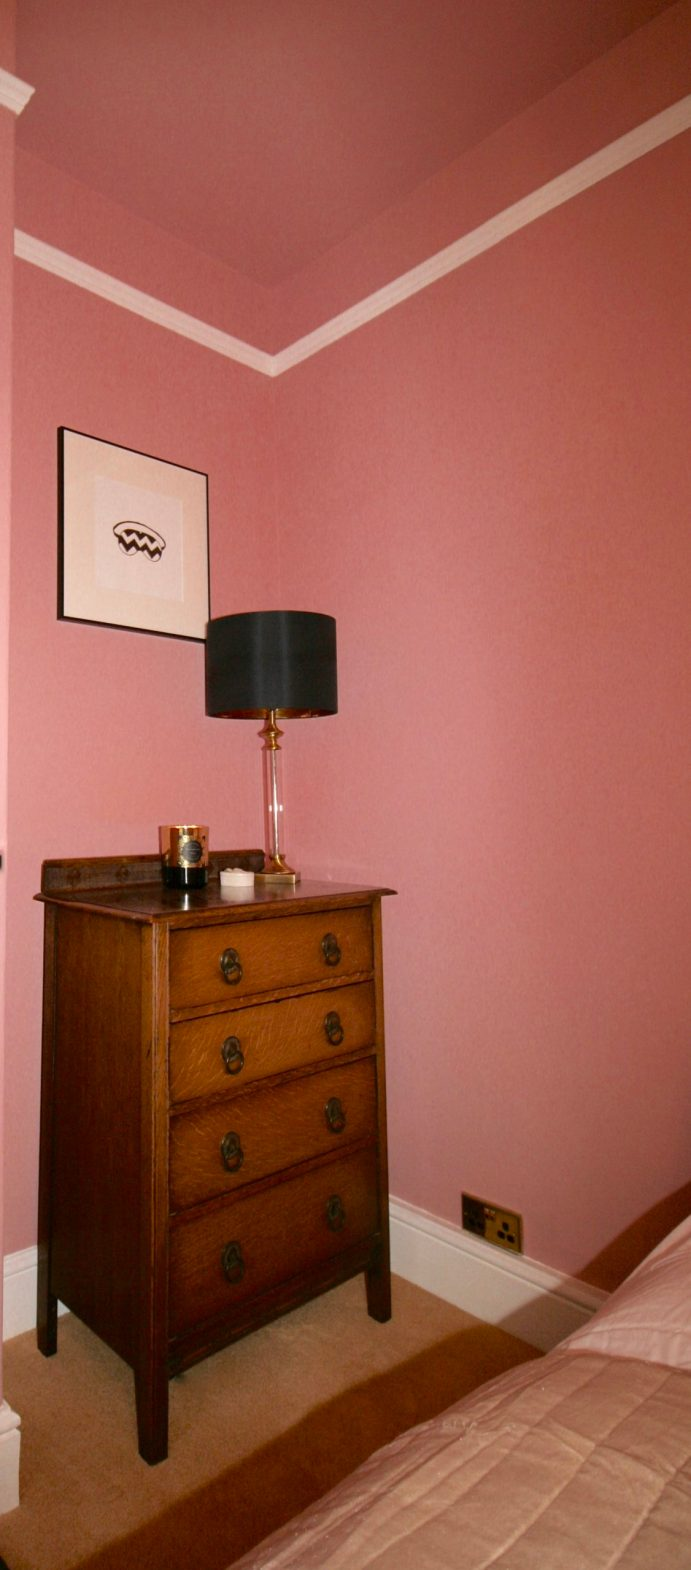 Mid century modern chest of drawers in pink bedroom designed by Amelia Wilson Interiors Ltd